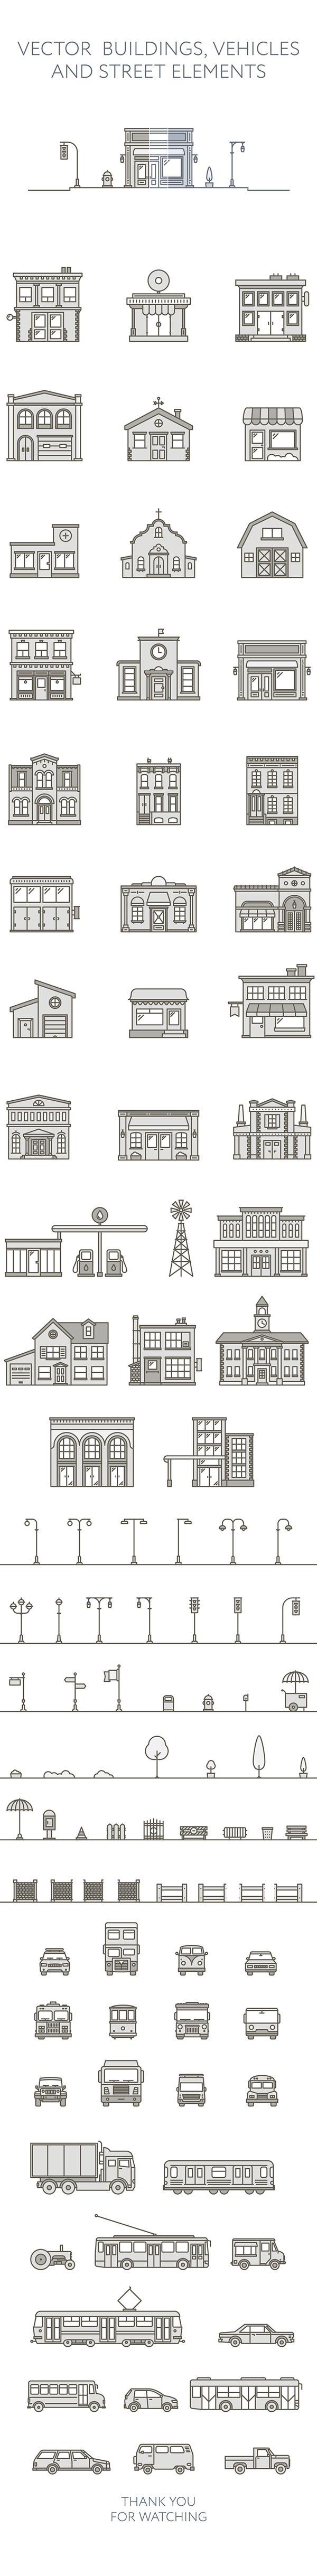 Vector Buildings, vehicles and street elements